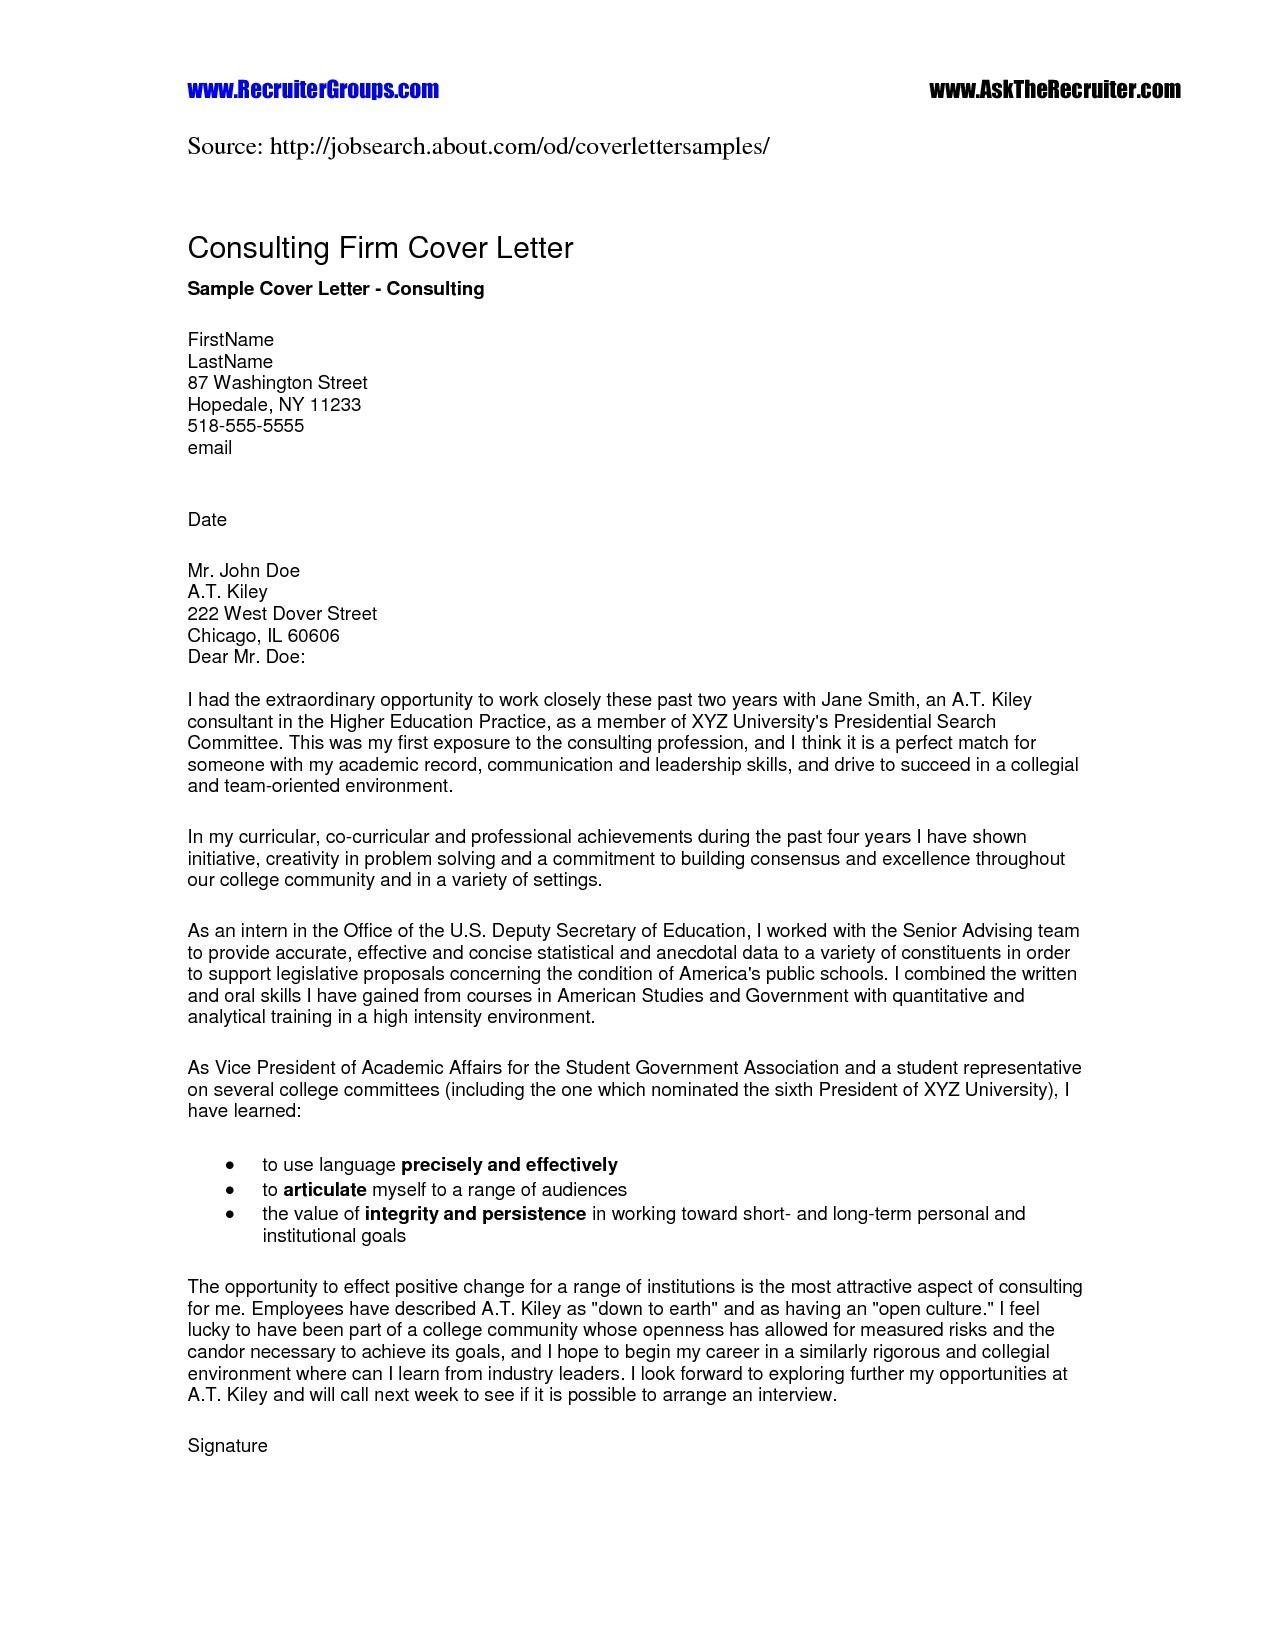 Mortgage Approval Letter Template - Job Letter for Loan New Job Letter for Loan Best Letter Template for